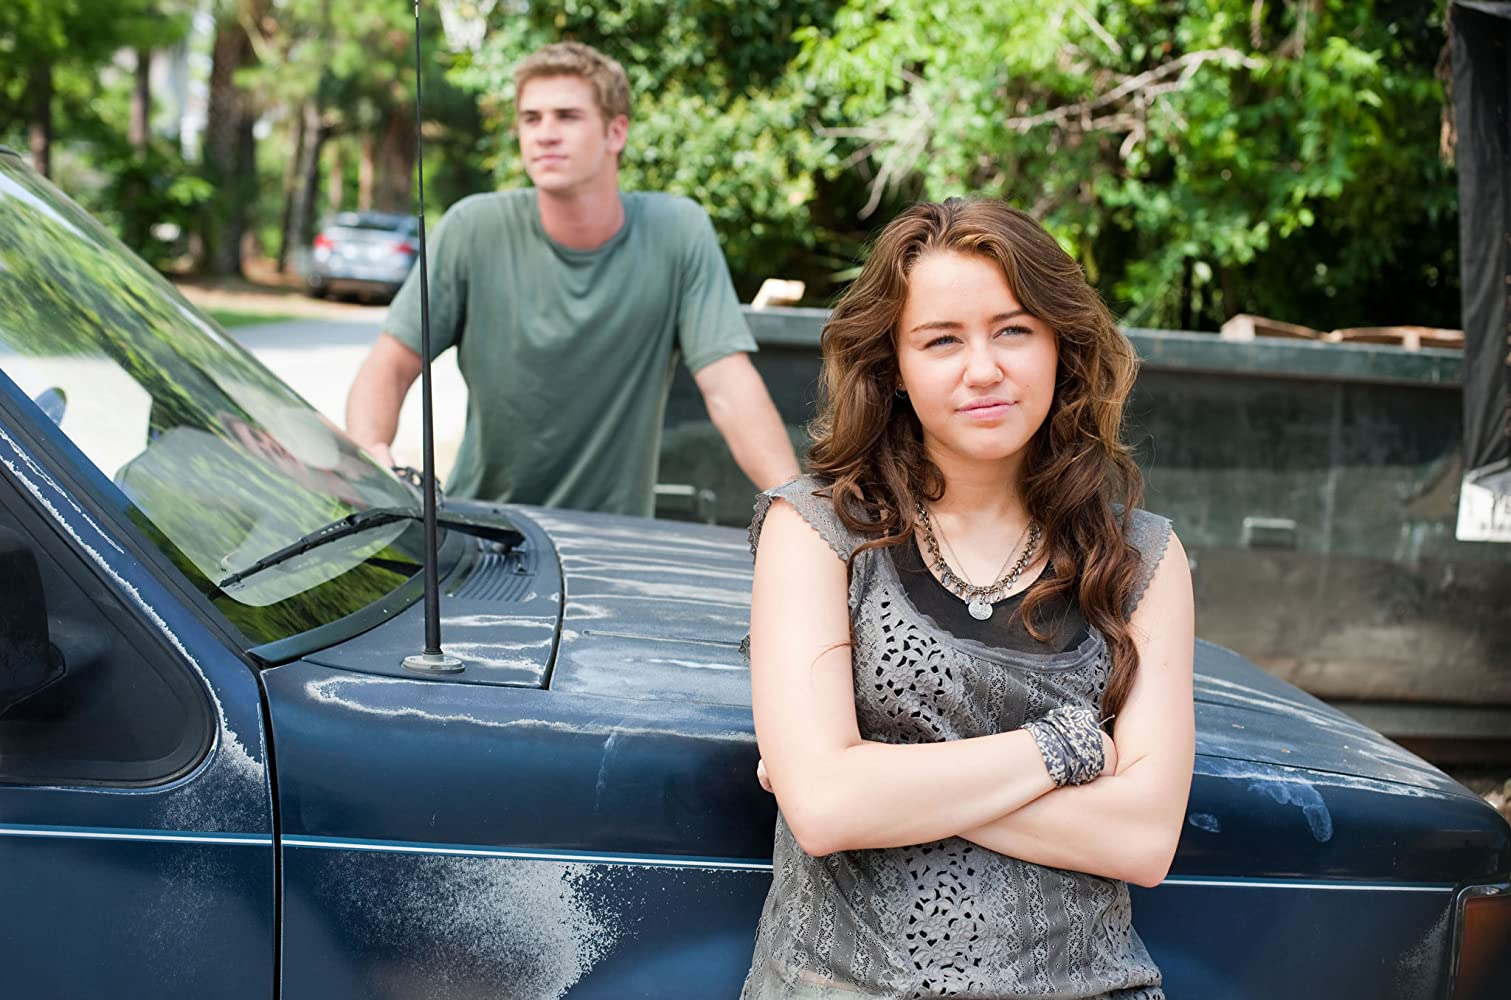 Miley Cyrus and Liam Hemsworth in The Last Song (2010)